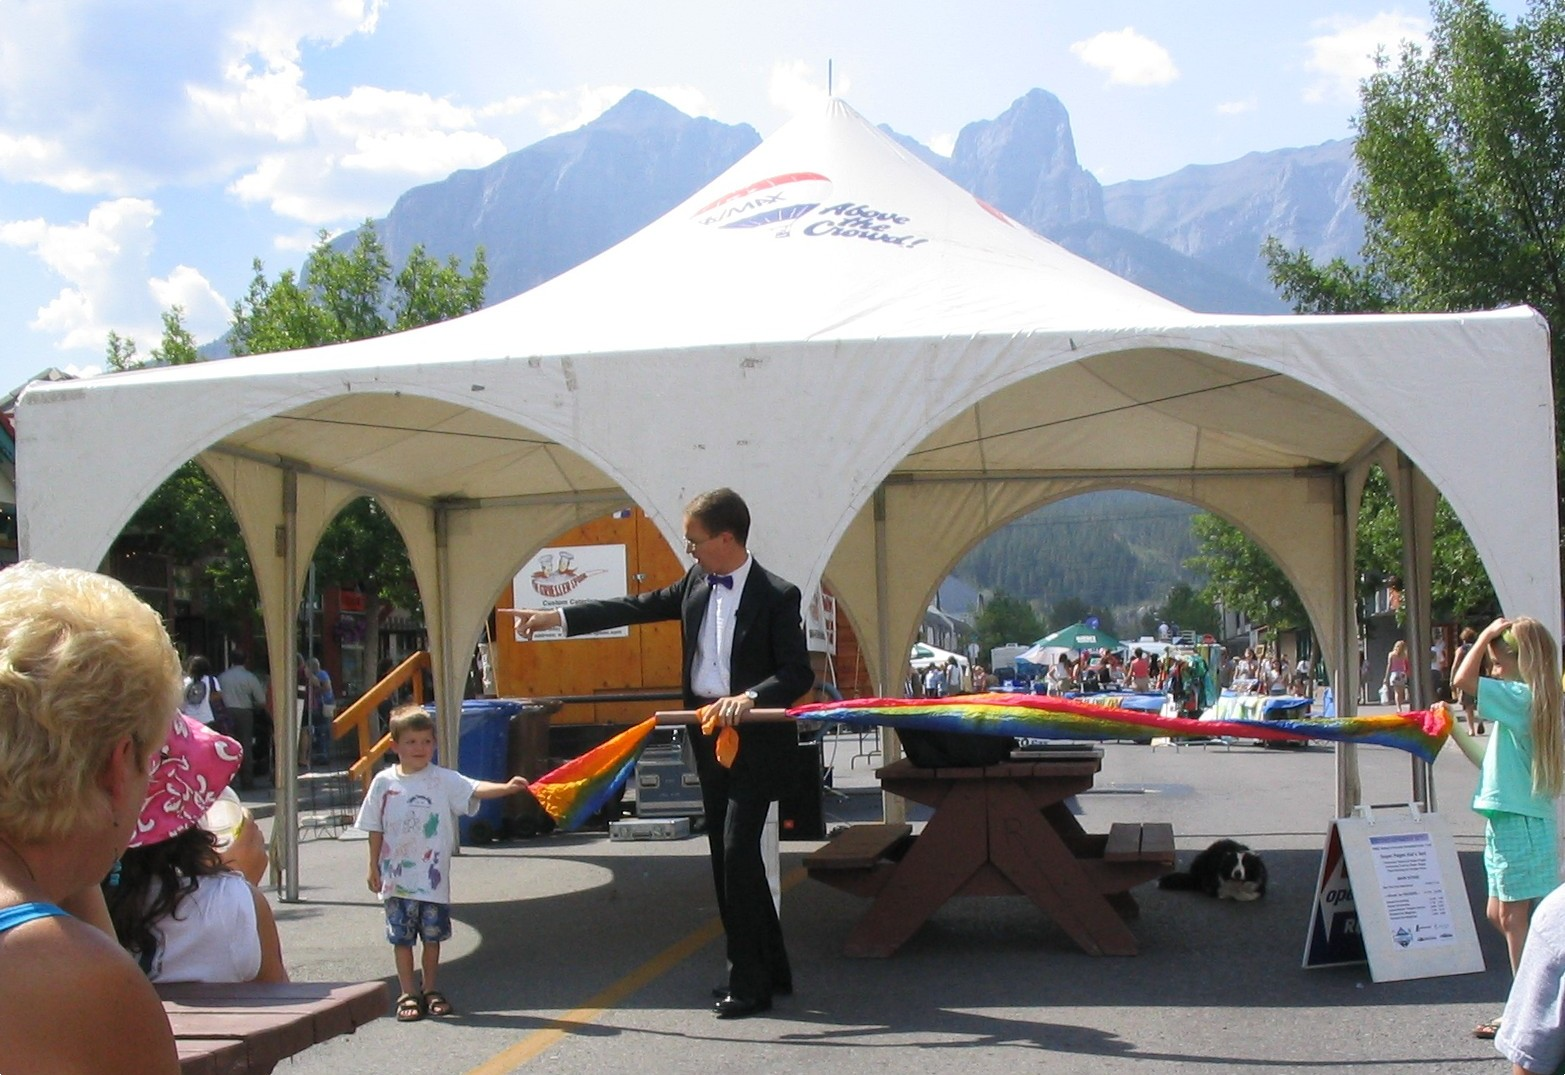 Richard Young the Magician at the Street Fair in Canmore, Alberta, Canada which is just outside of Banff, Alberta